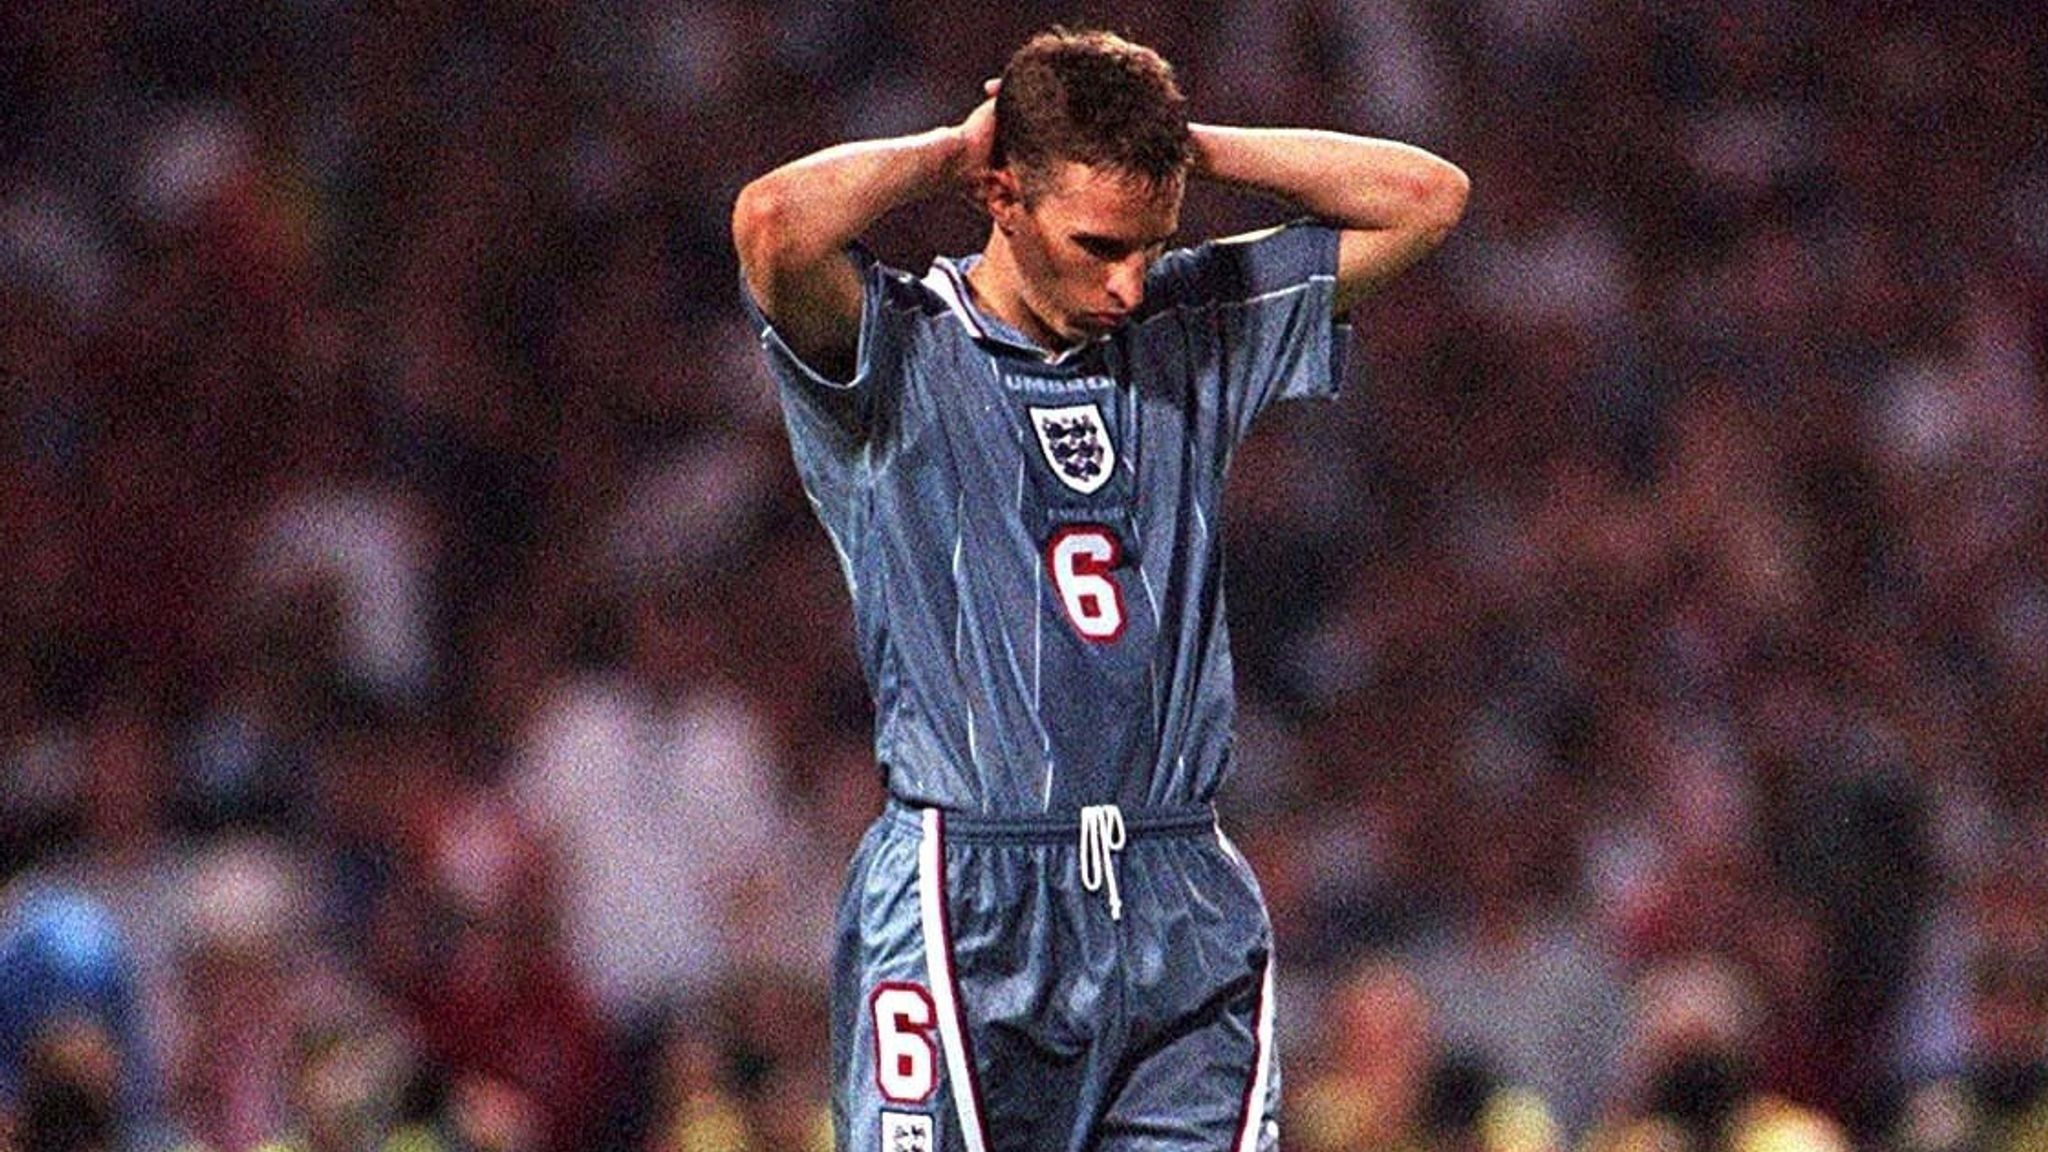 England are actually excellent at taking penalties, scientists say   UK  News   Sky News